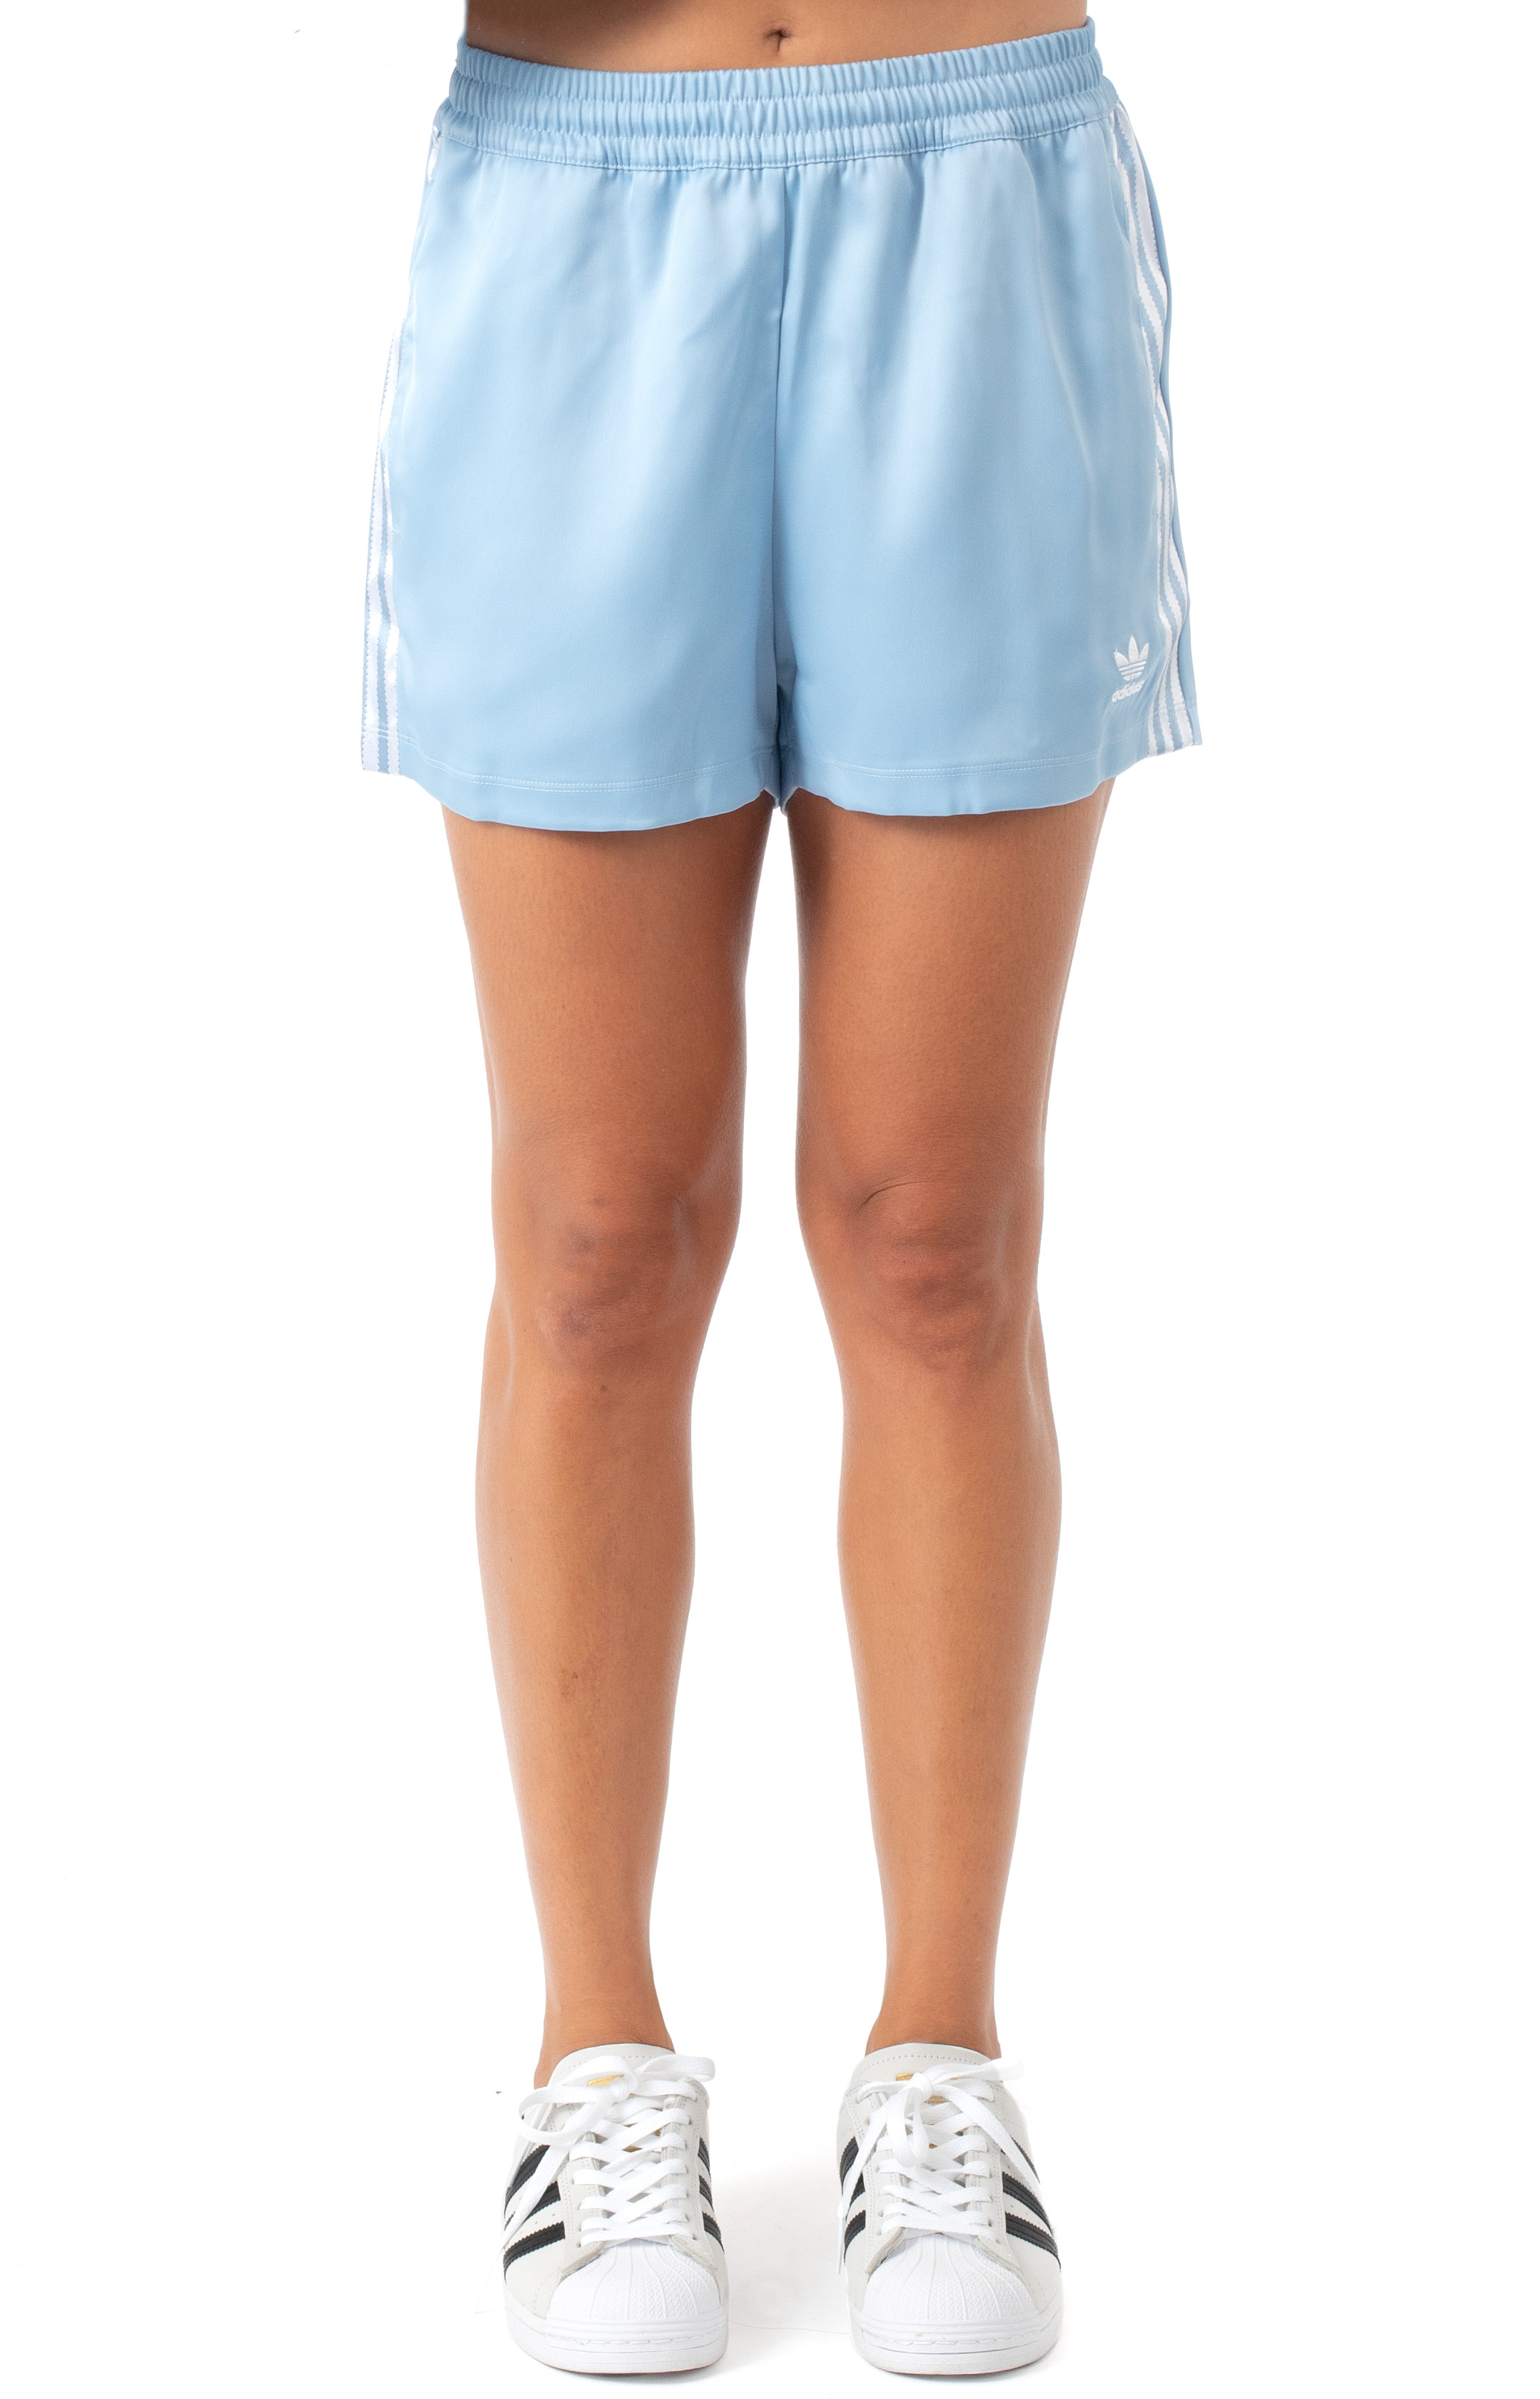 (H37808) 3 Stripe Shorts - Ambient Sky